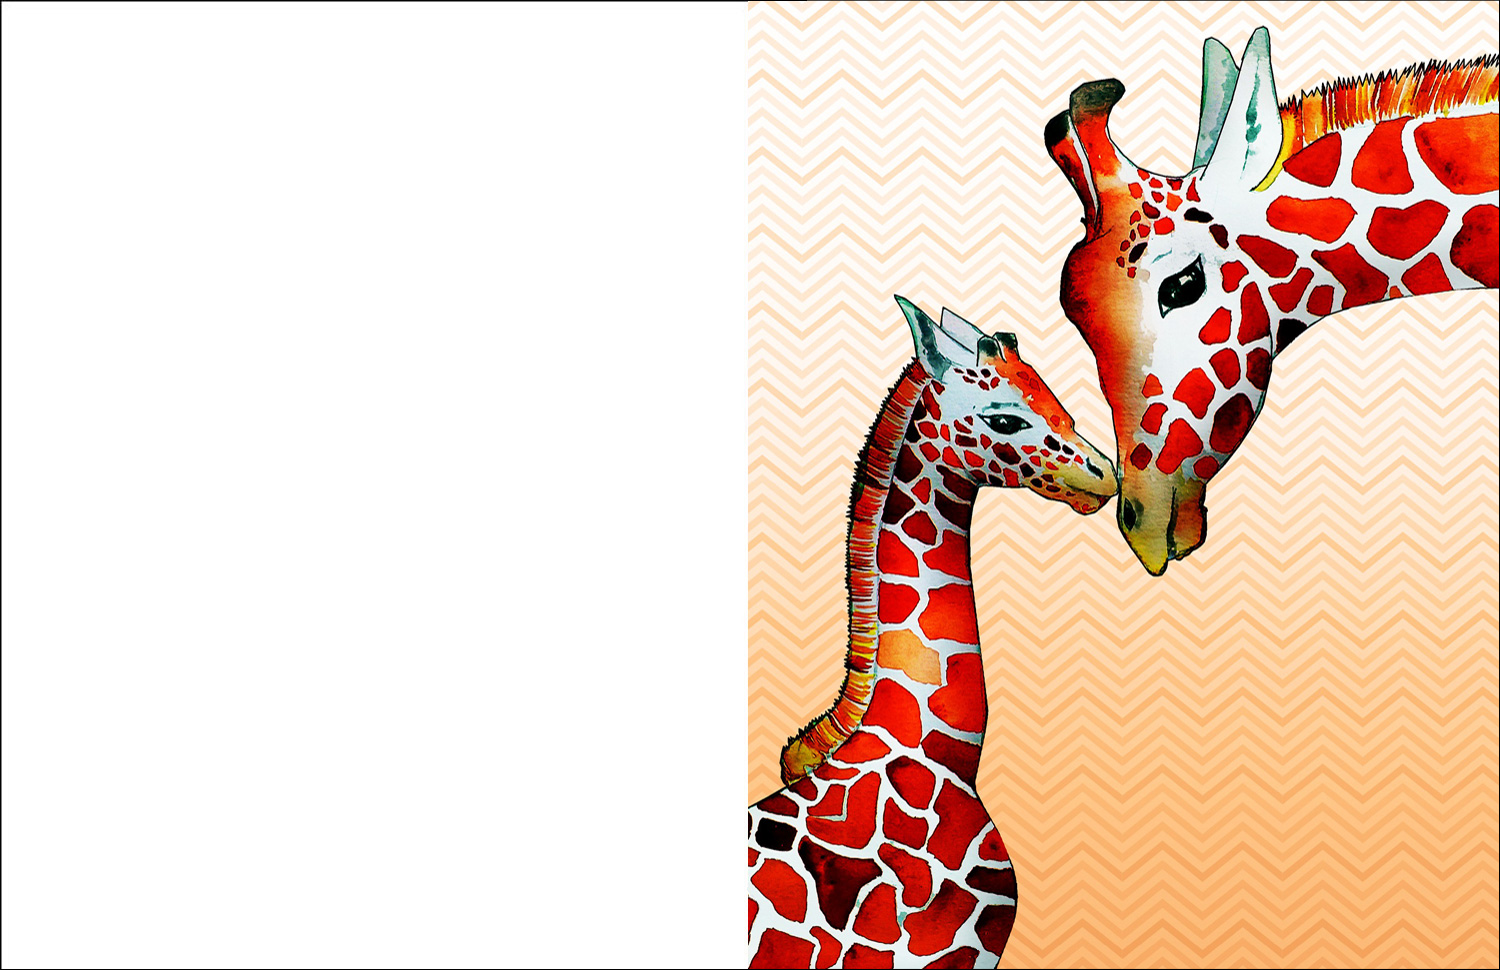 Free printable greetings card picturing a giraffe and child.